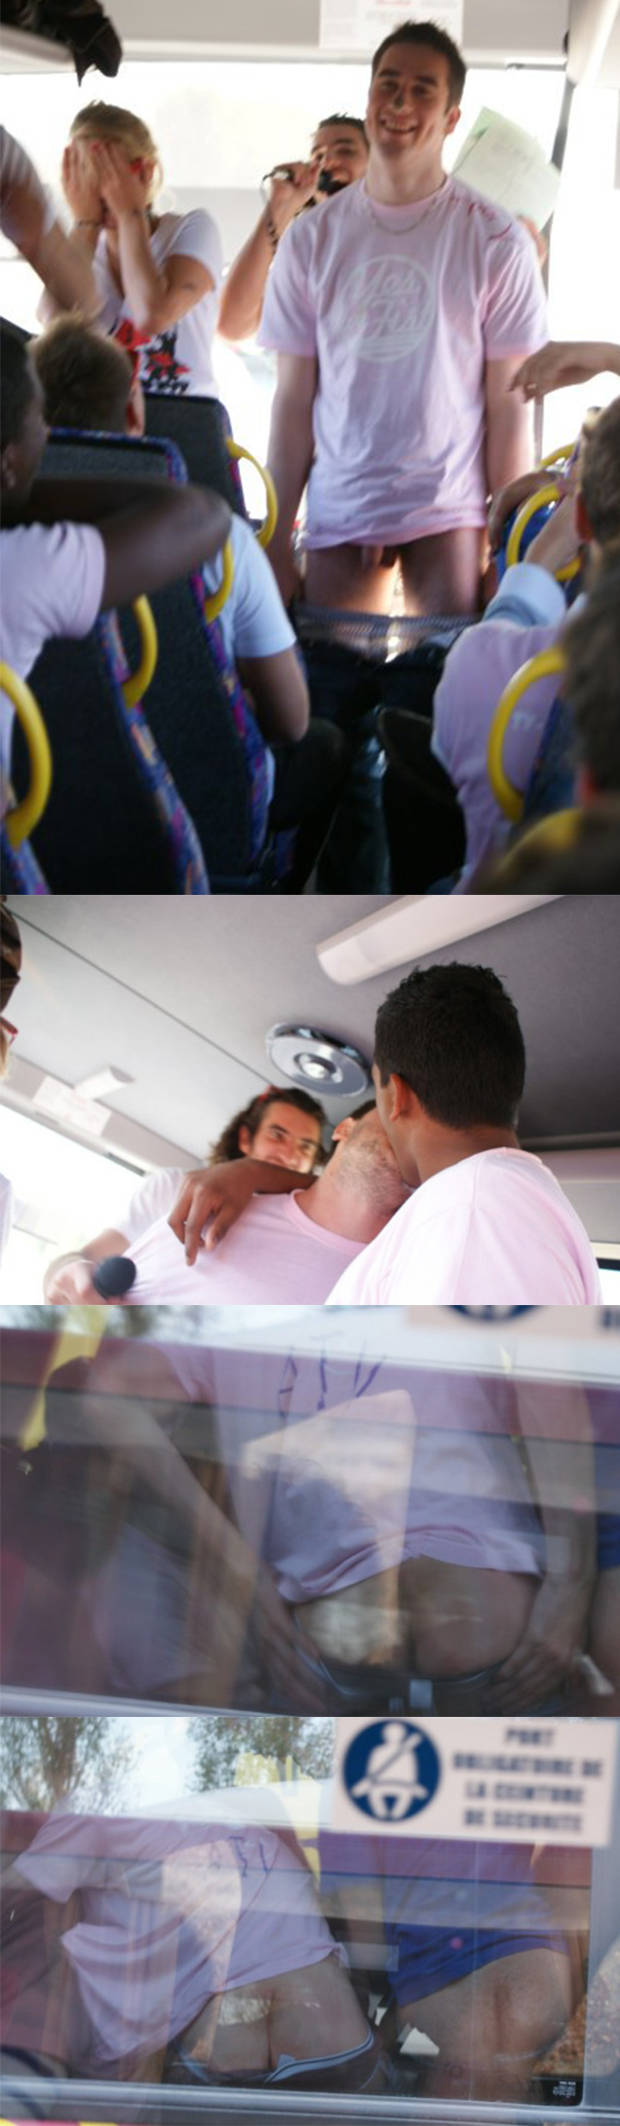 candid straight guy undressing bus